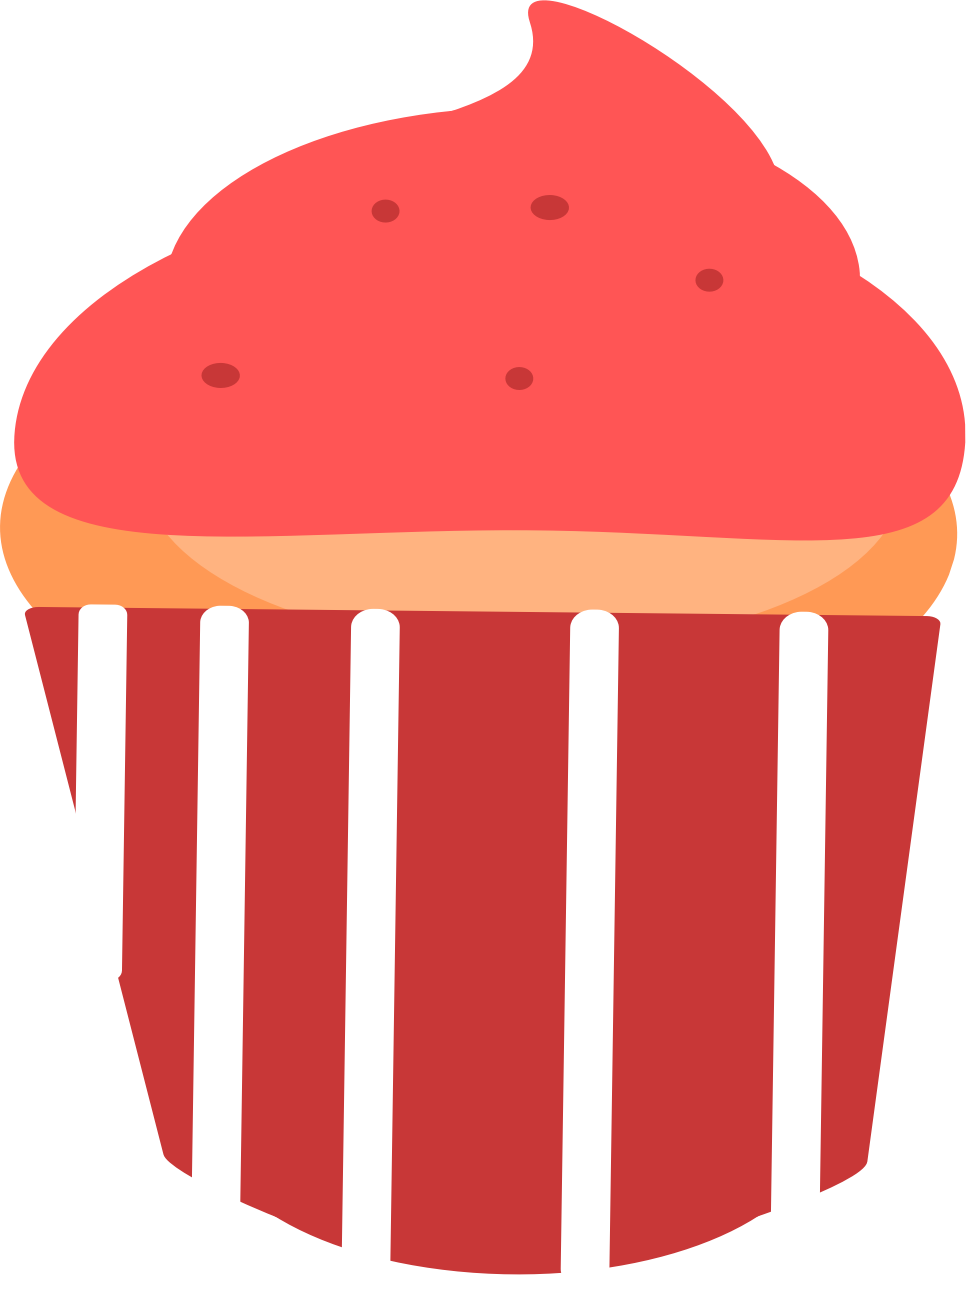 Muffin clipart 3 cupcake. Big image png